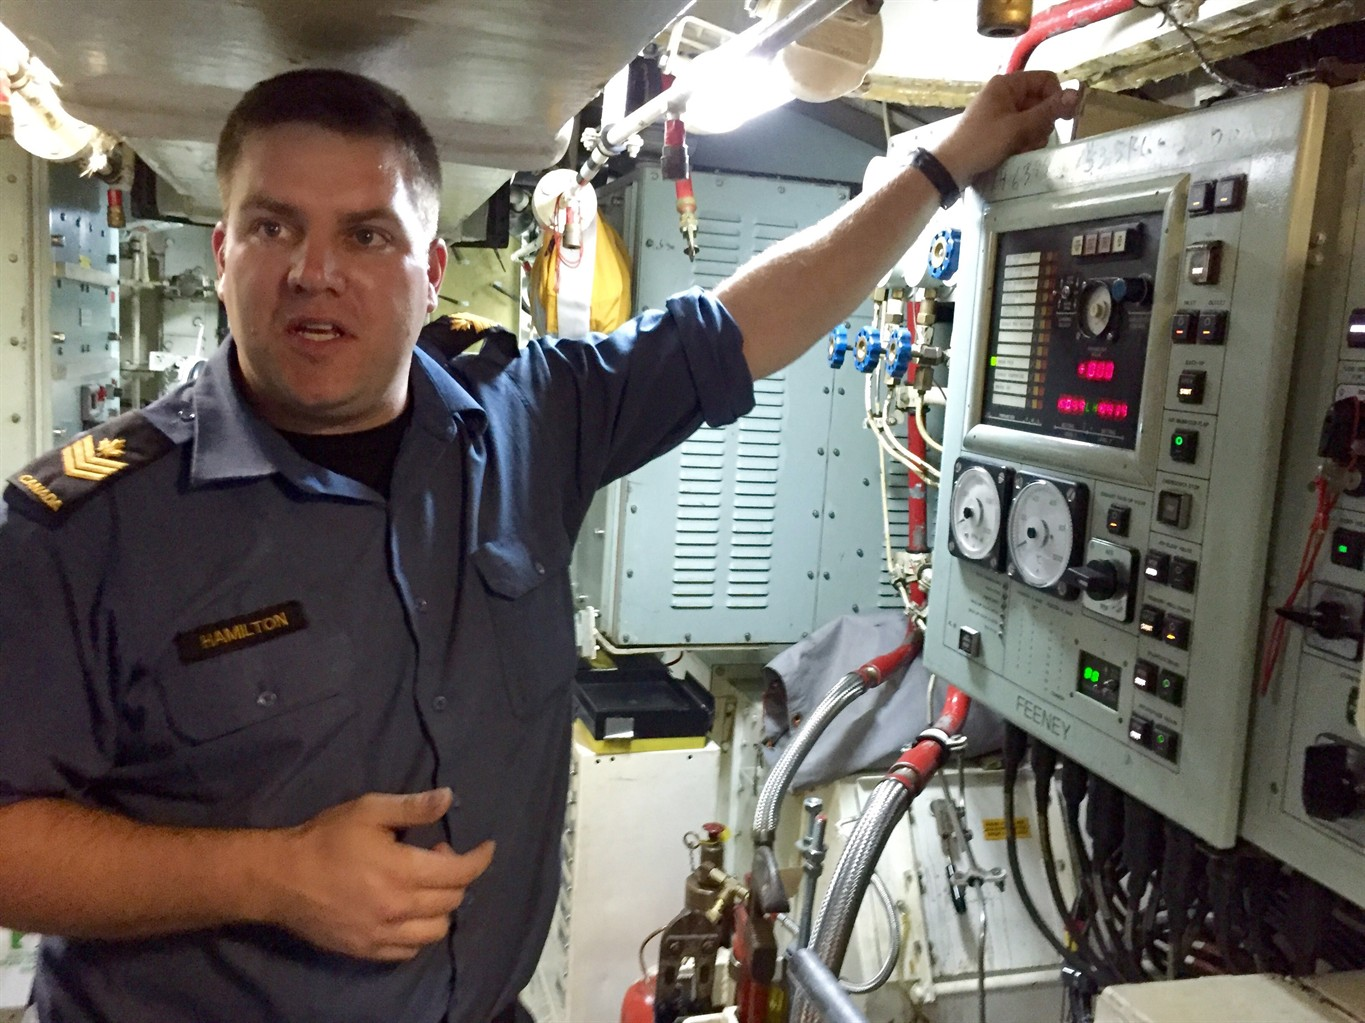 diesel gets in your blood submariners a rare breed in canadian rh toronto citynews ca Pharmacy Technician Job Description Medical Technician Jobs